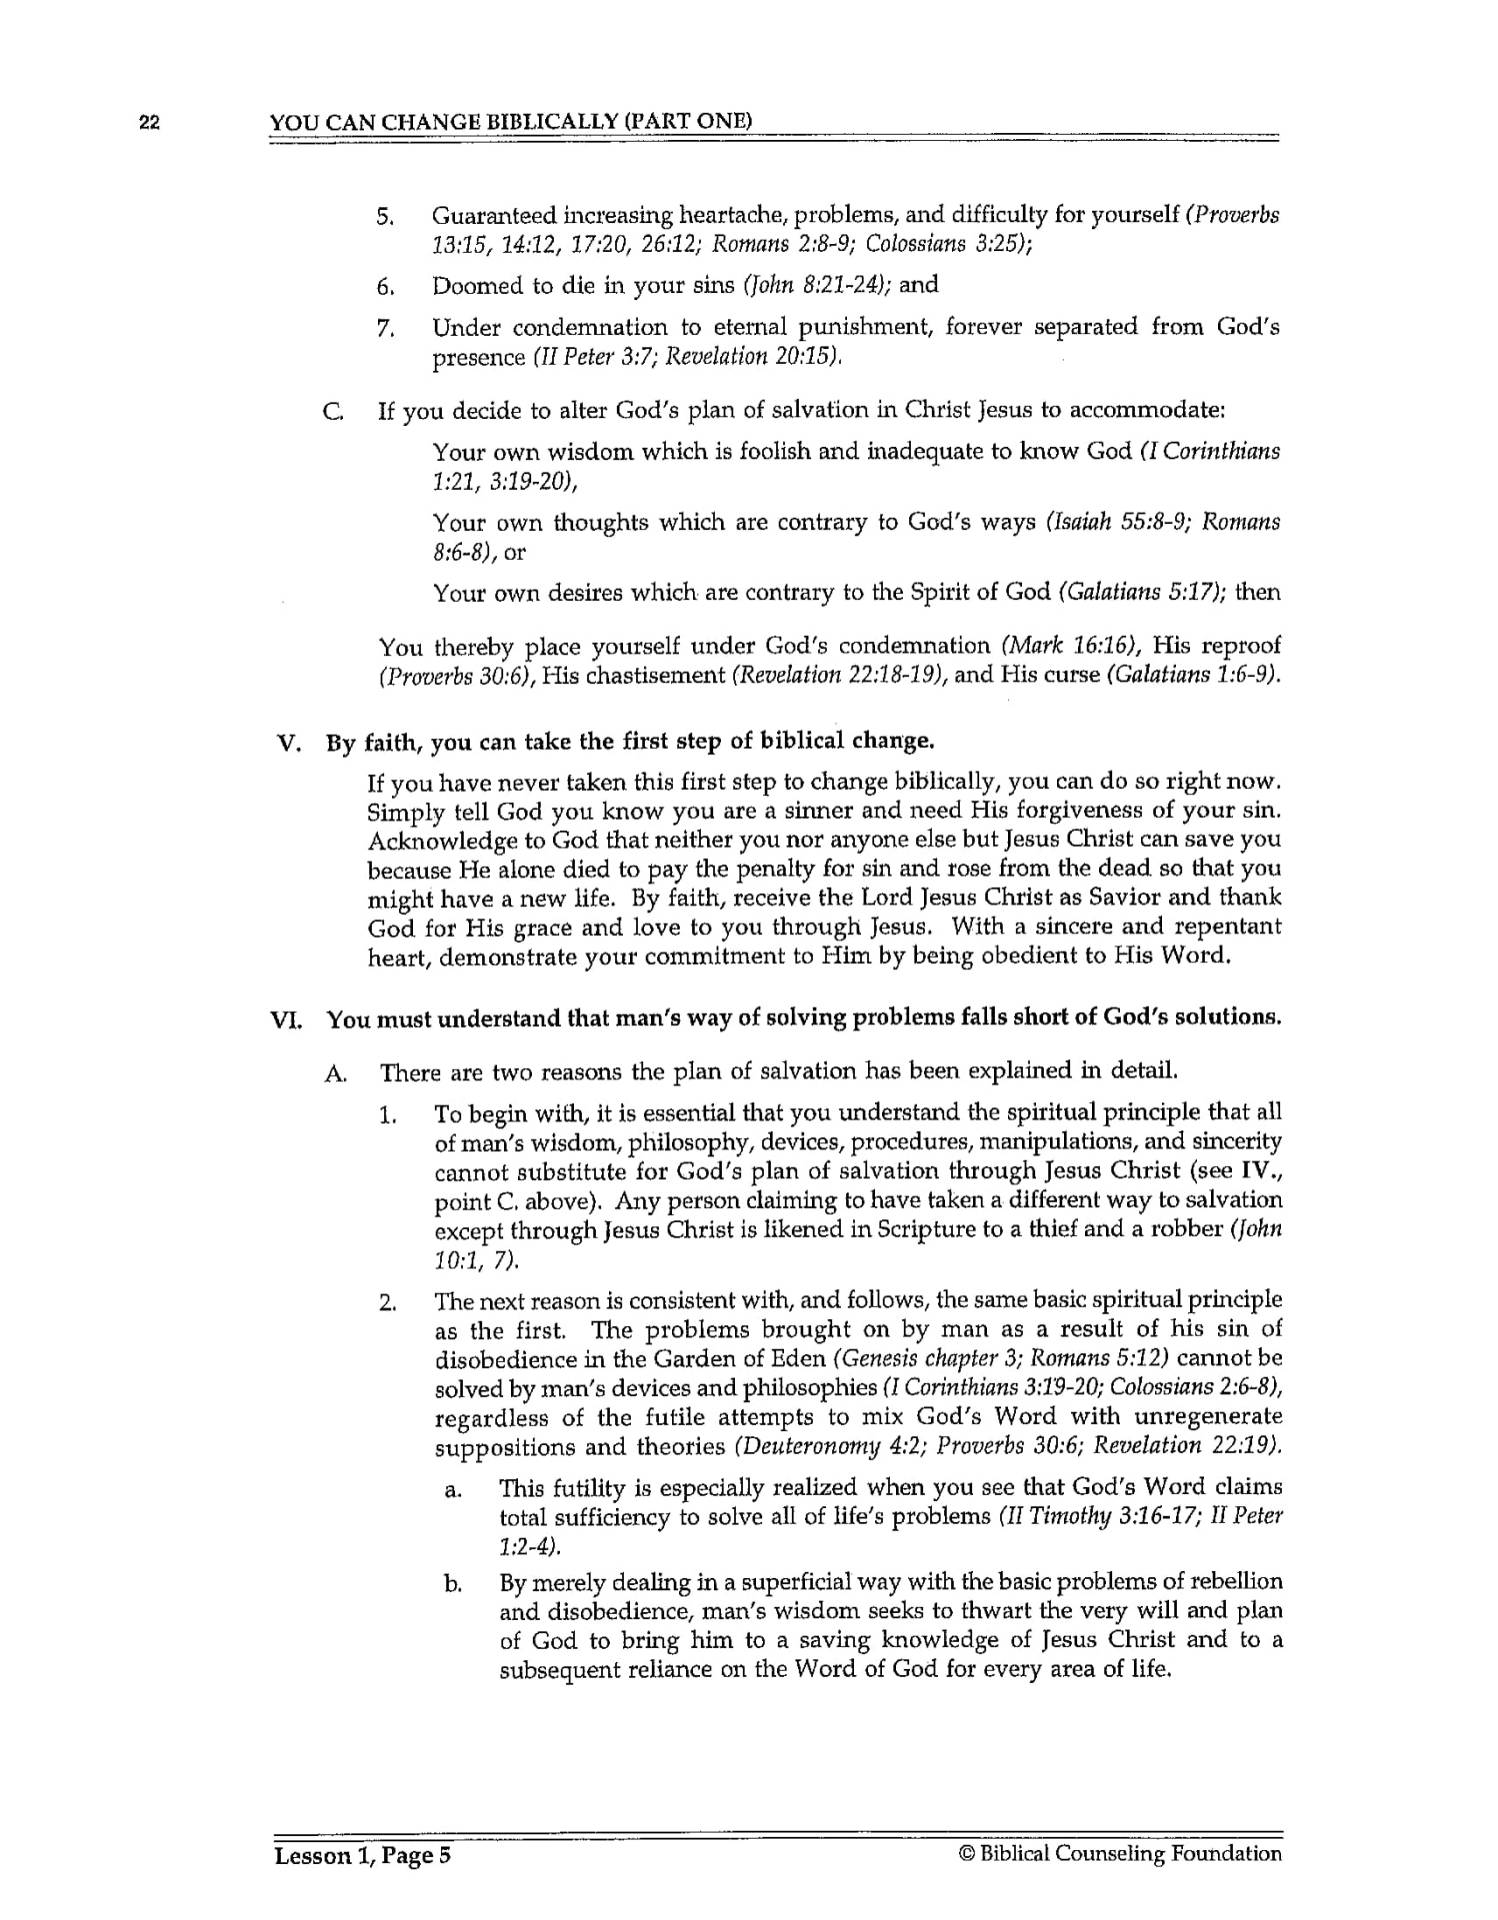 BC&D-02 - Lesson 1 - You Can Change Biblically 1 Work Book Page-06